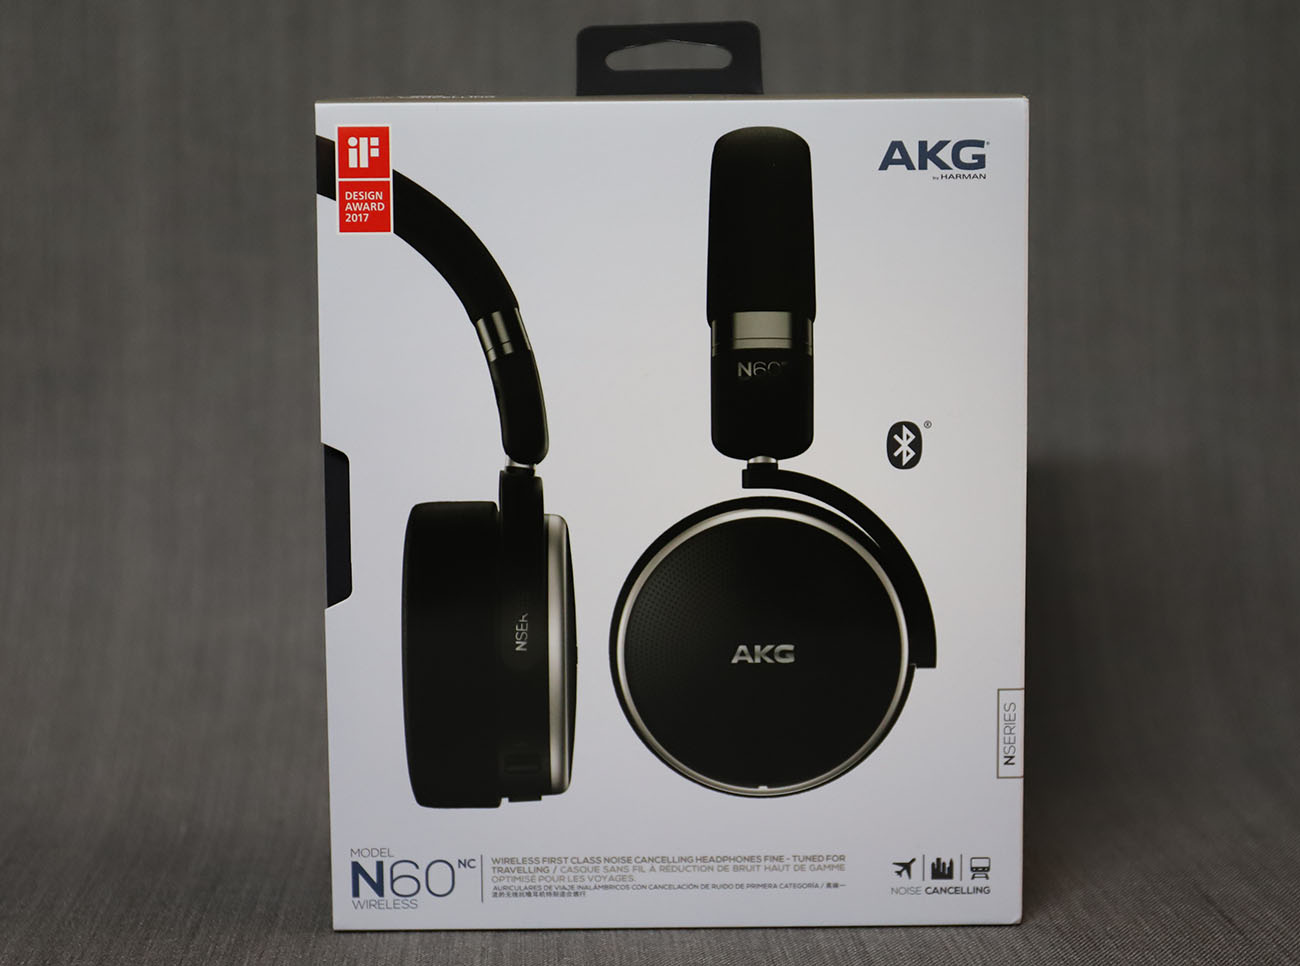 427d9feaa47 AKG N60 Noise Cancelling headphone review: Comfortable with a great sound »  EFTM